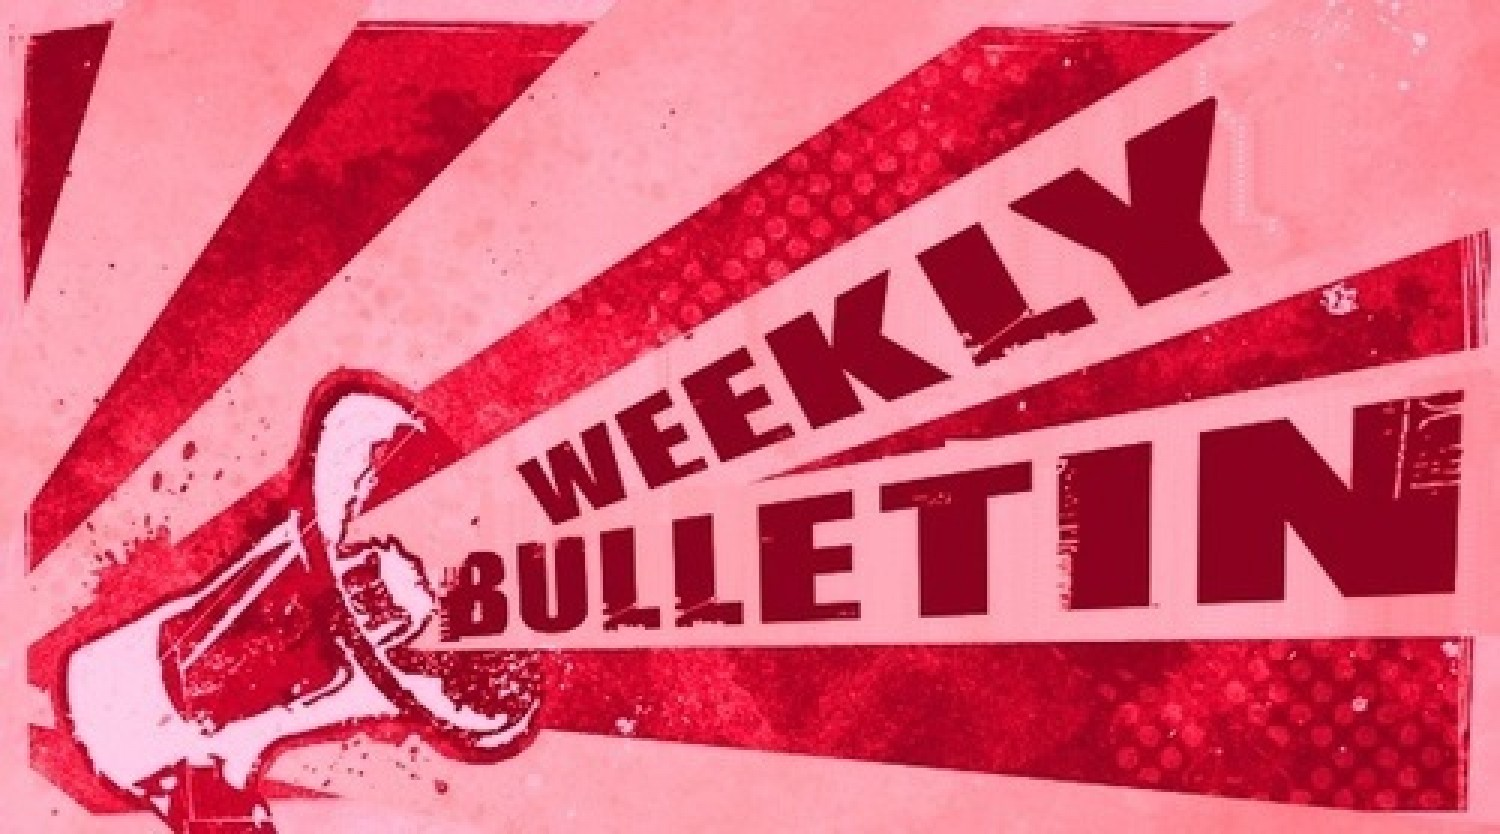 Weekly Bulletin June 21st